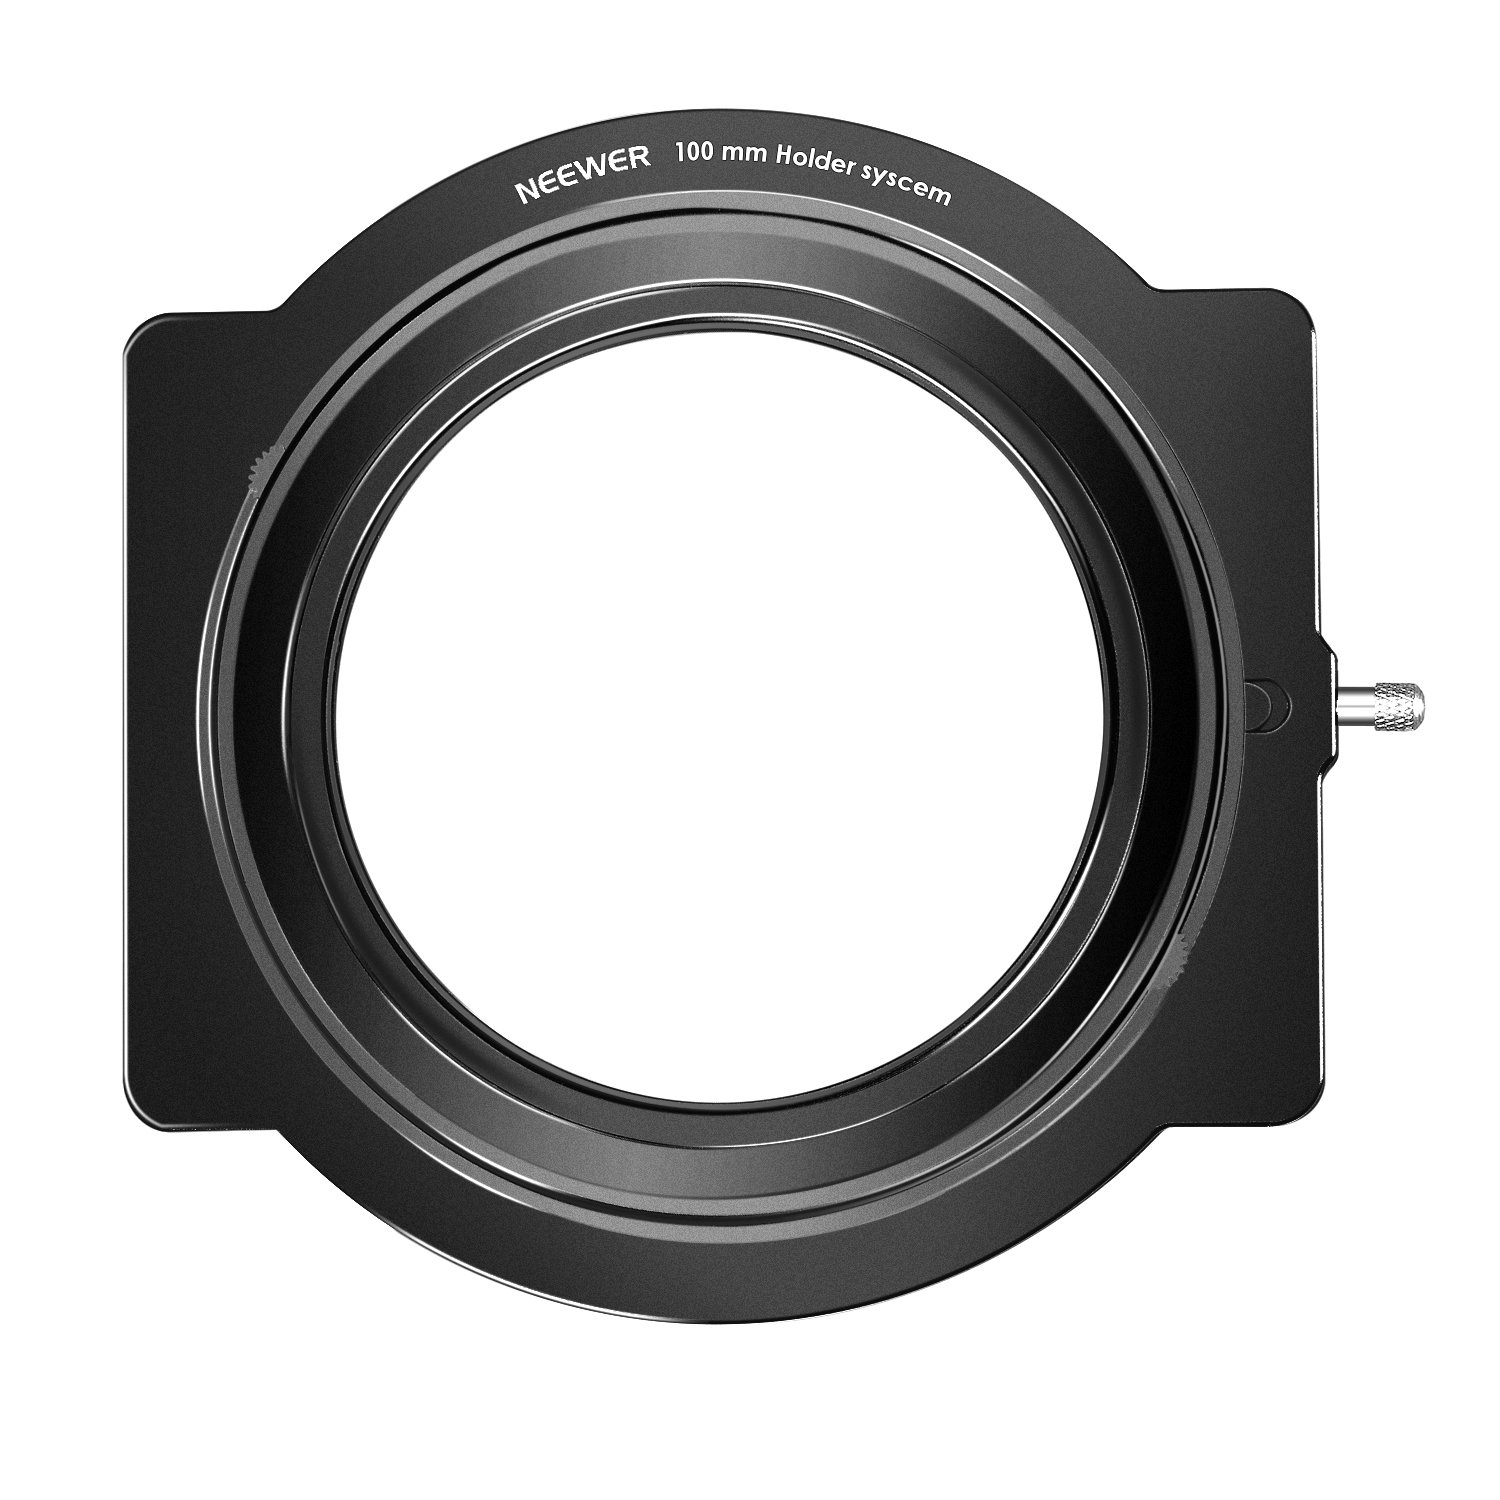 Neewer 100mm System Filter Holder Kit- 86mm CPL Filter, Filter Holder and 52mm/55mm /58mm/62mm/67mm/72mm/77mm Adapter Ring, Compatible with Lee Cokin Hitech Singh-ray 10091319